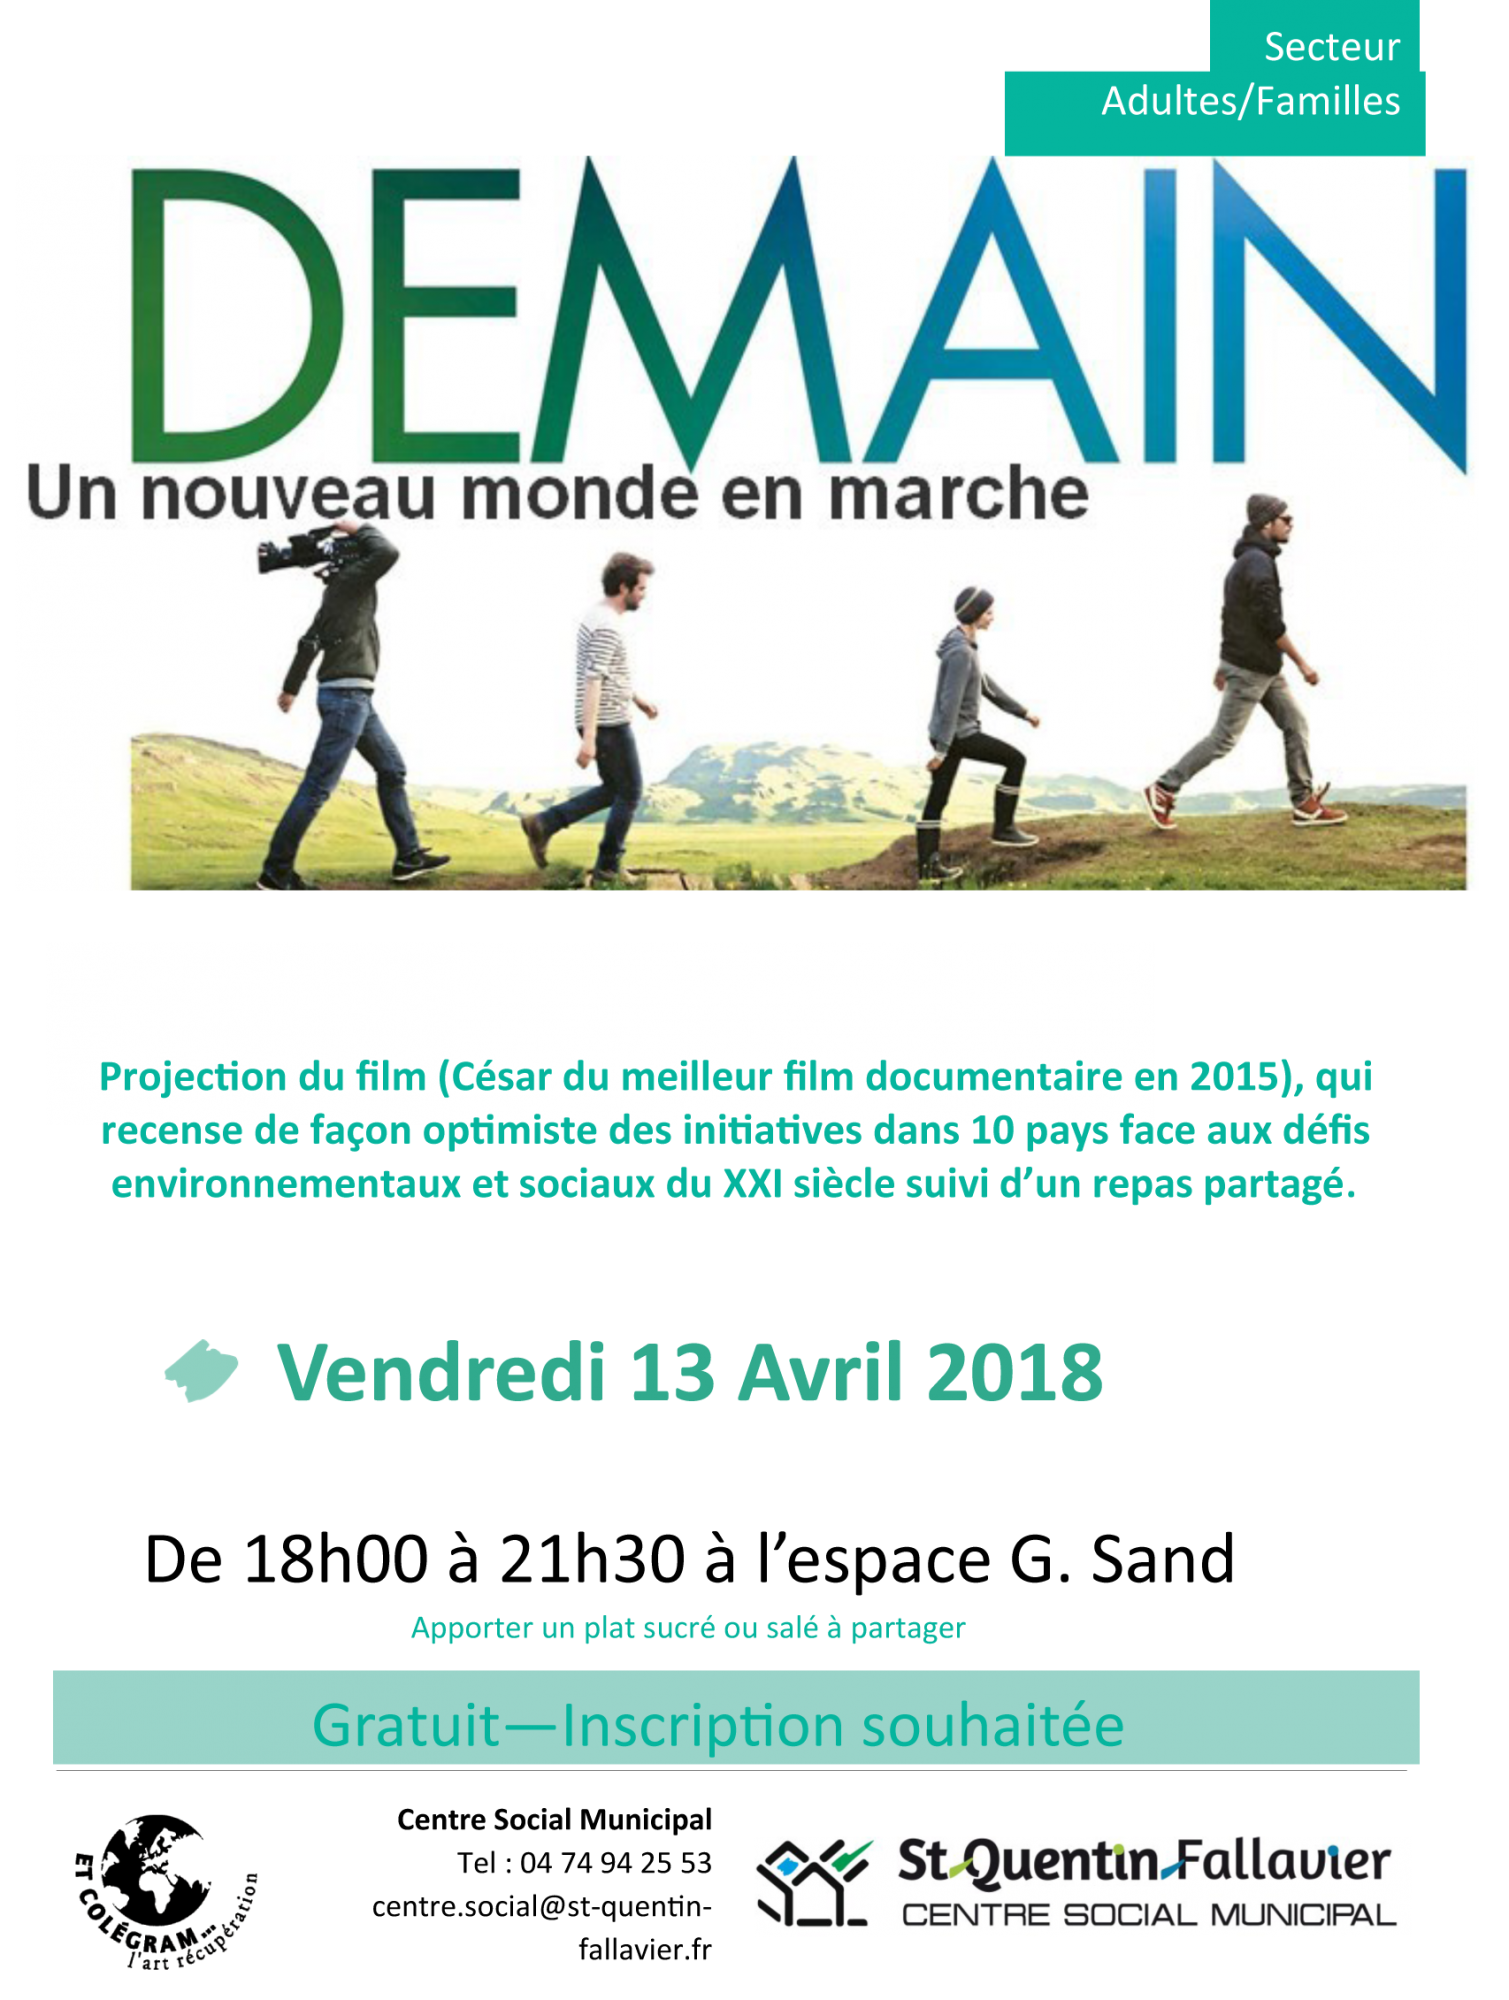 Projection du film « DEMAIN » à Saint-Quentin-Fallavier